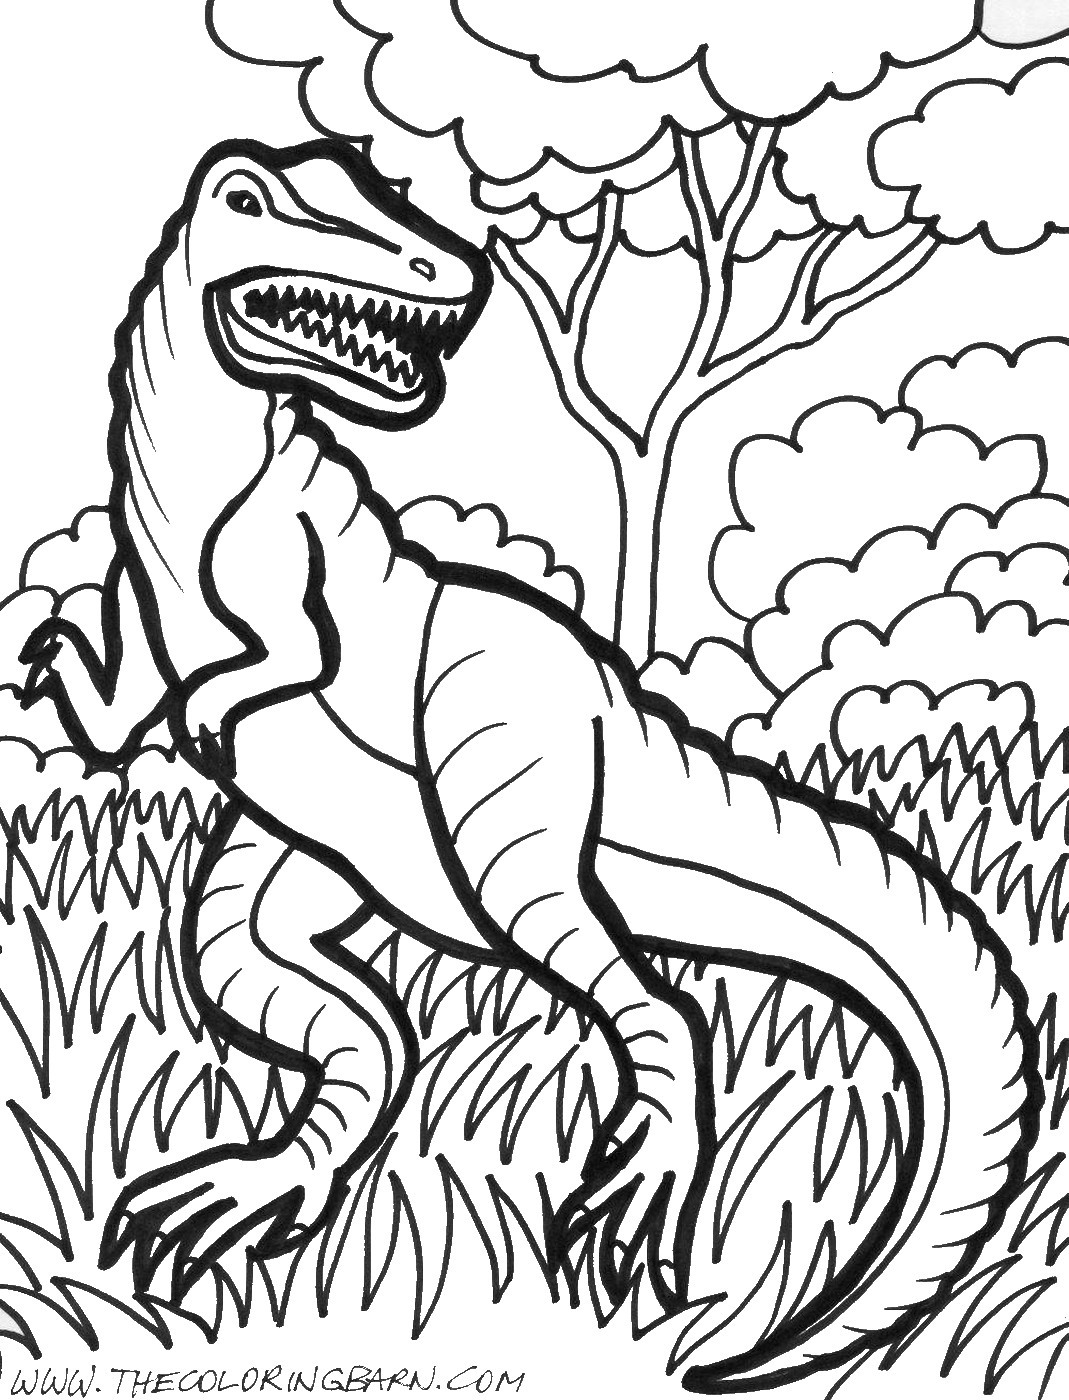 Dinosaur Coloring Pages | Birthday Printable